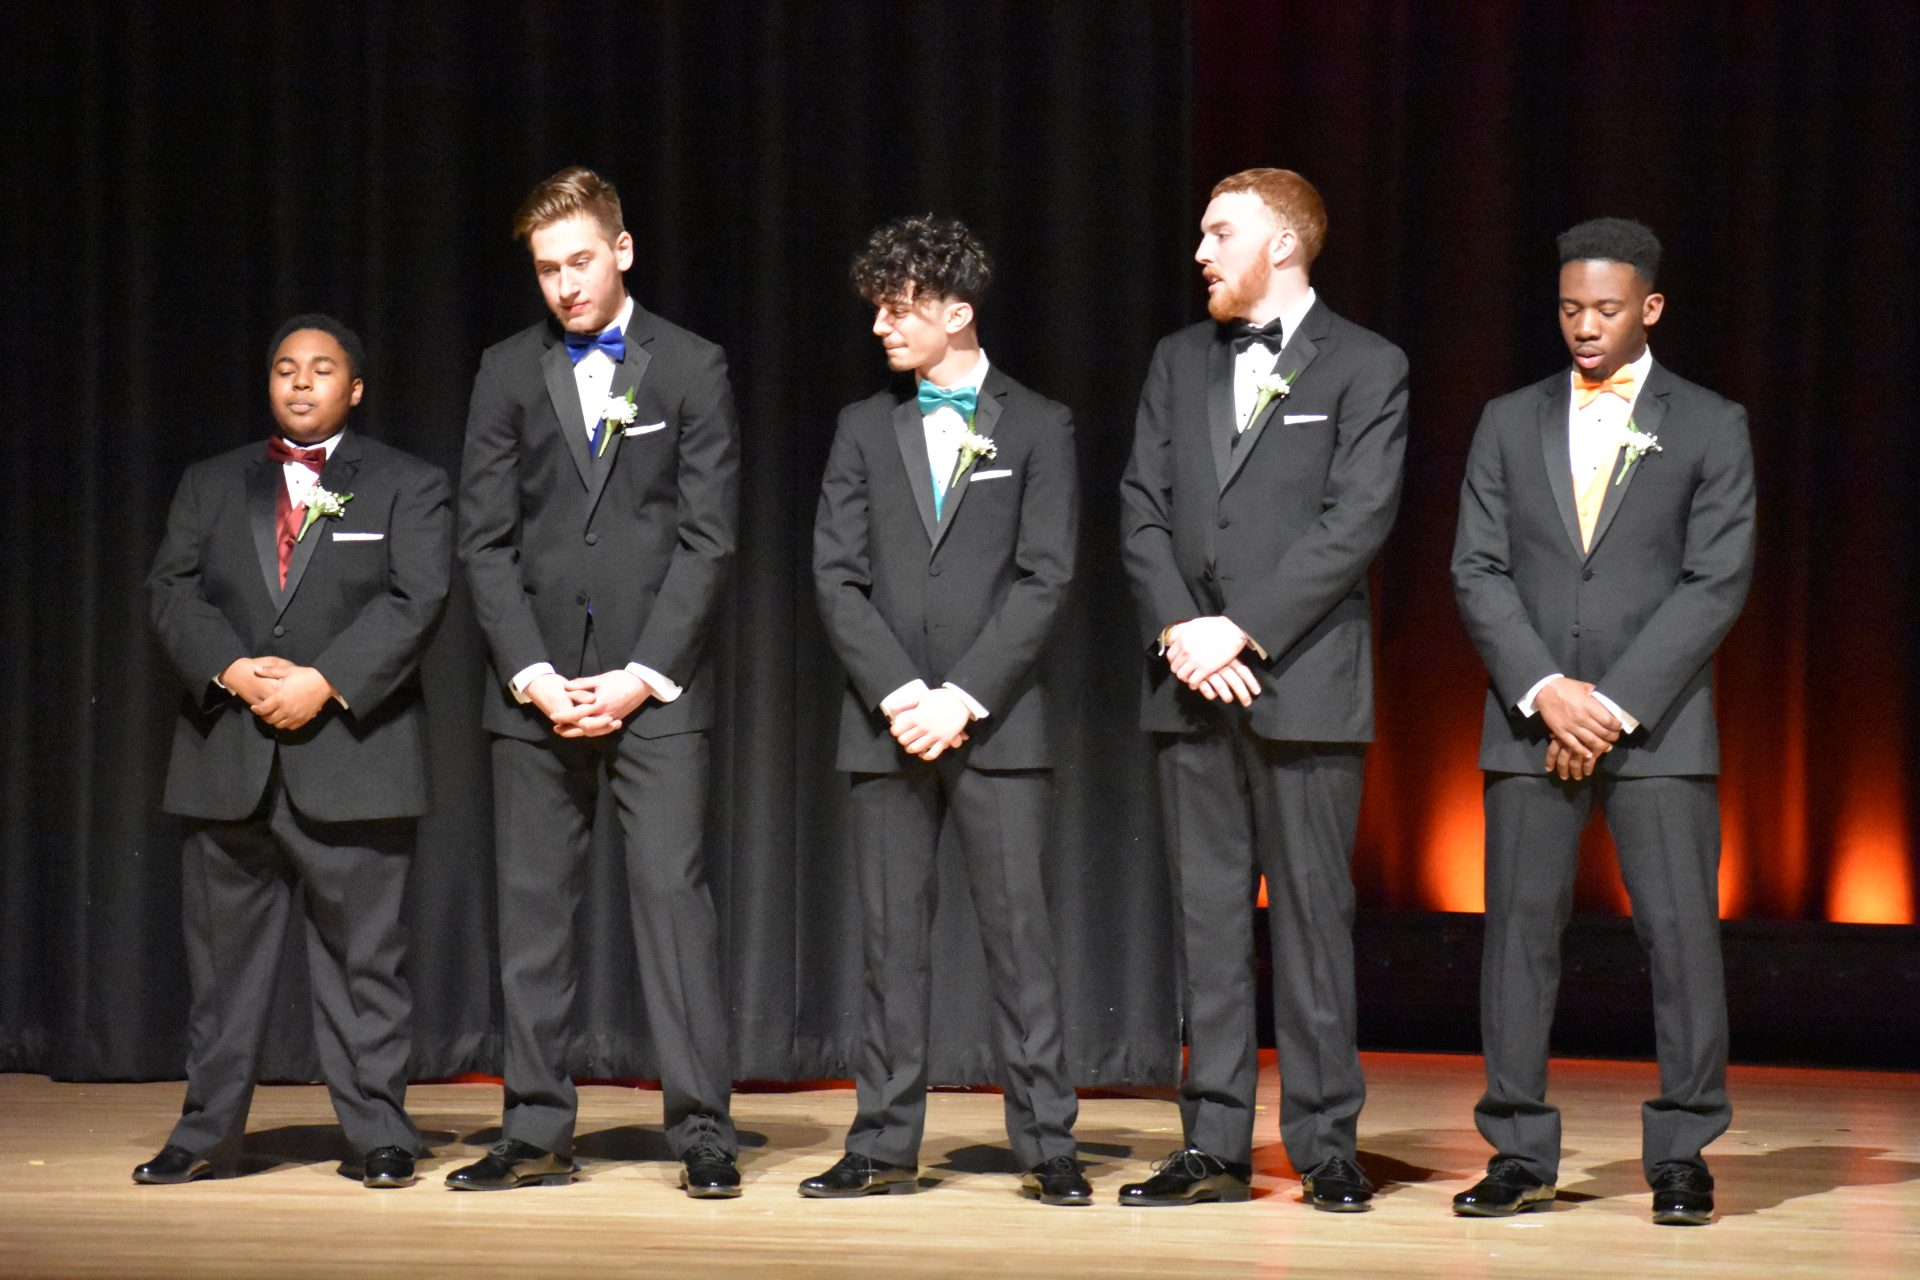 Jhona, Jacob, Joey, Dylan, Marvin standing in a line